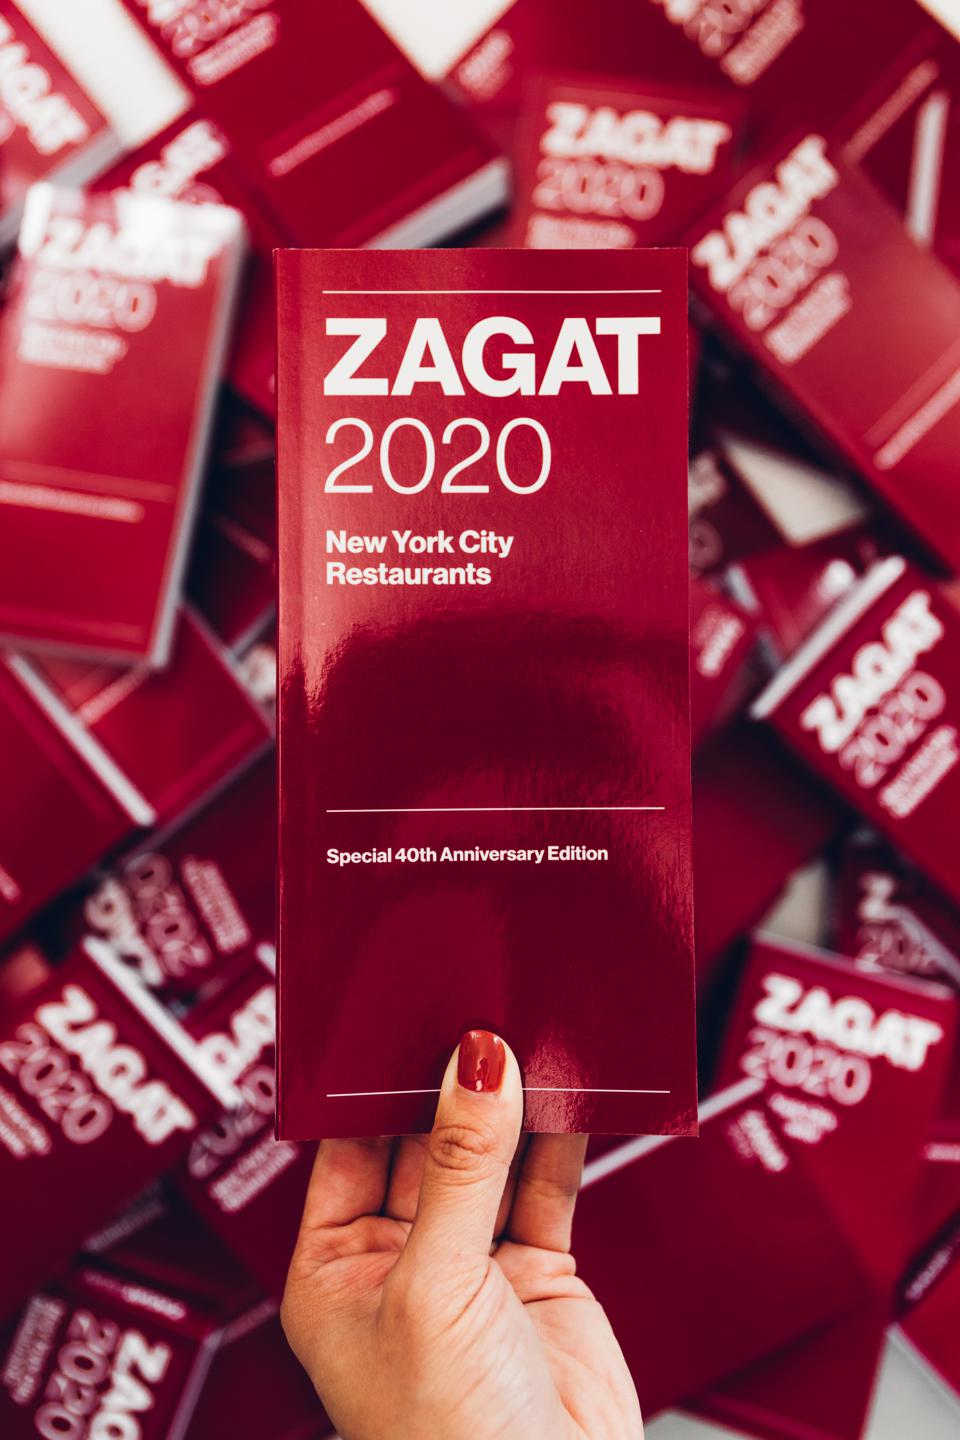 1400 reviews can be found within the new Zagat 2020 Nw York City Restaurants